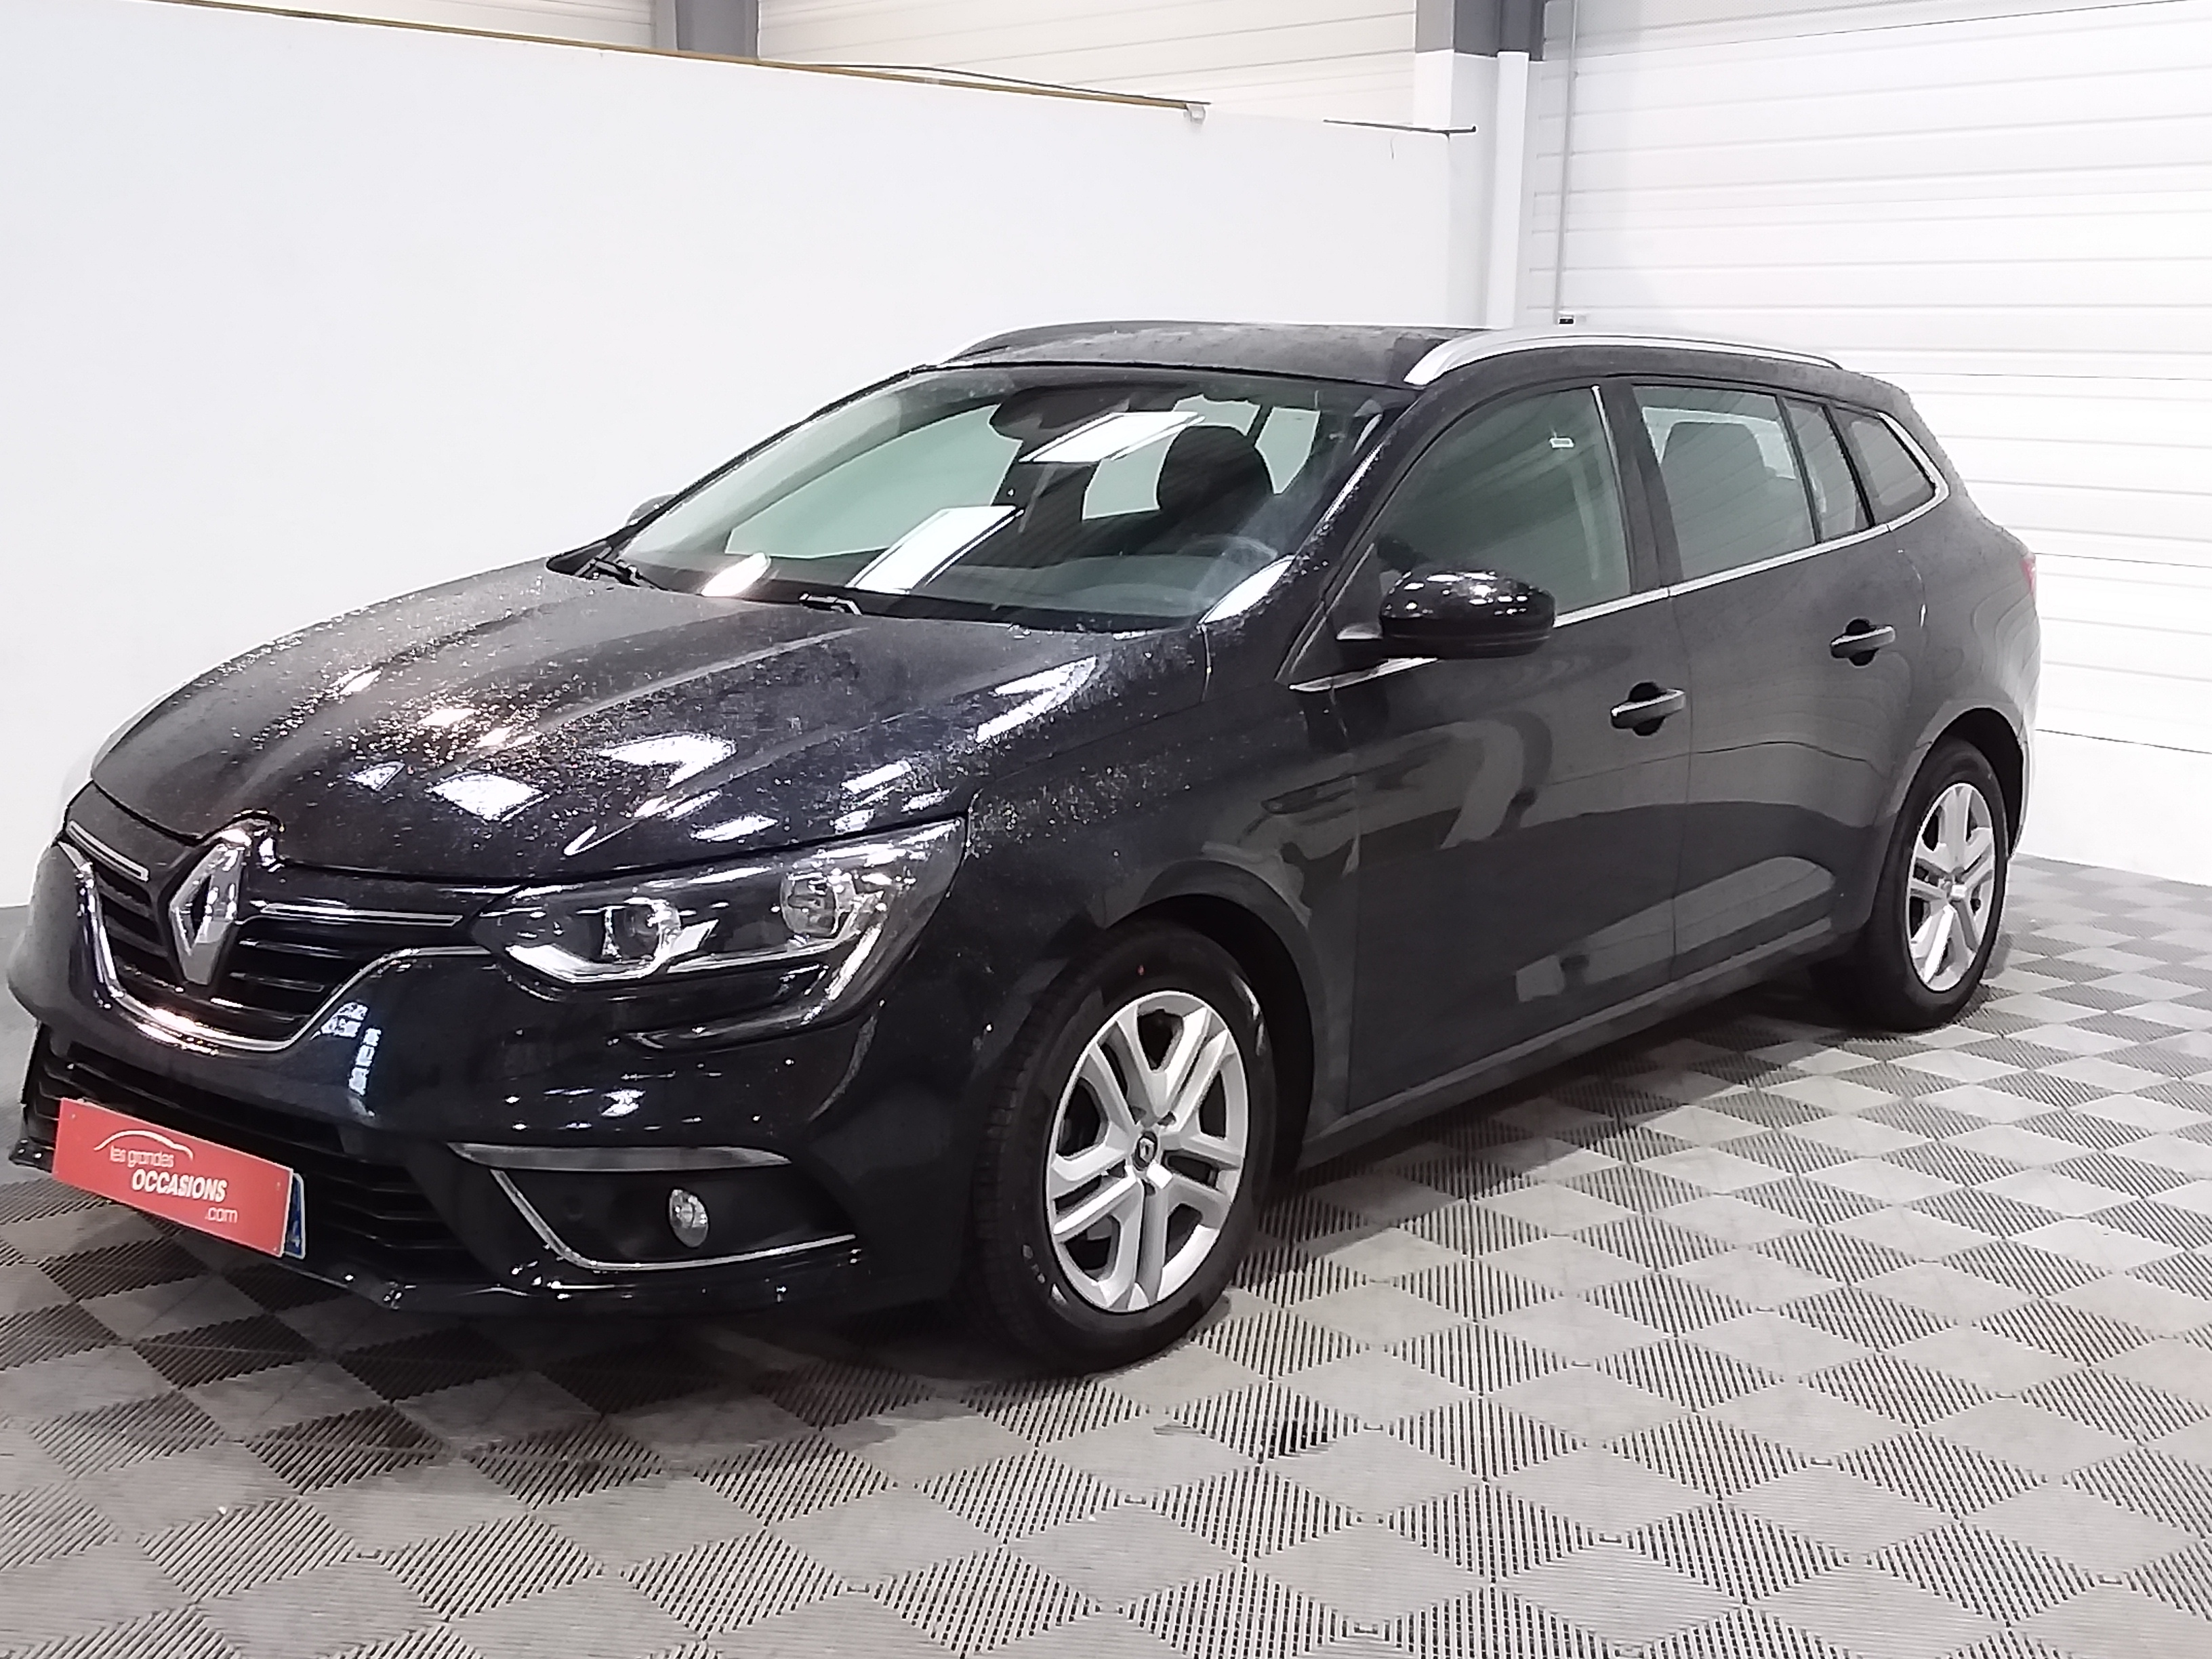 RENAULT MEGANE IV ESTATE DCI 110 ENERGY BUSINESS EDC d'occasion